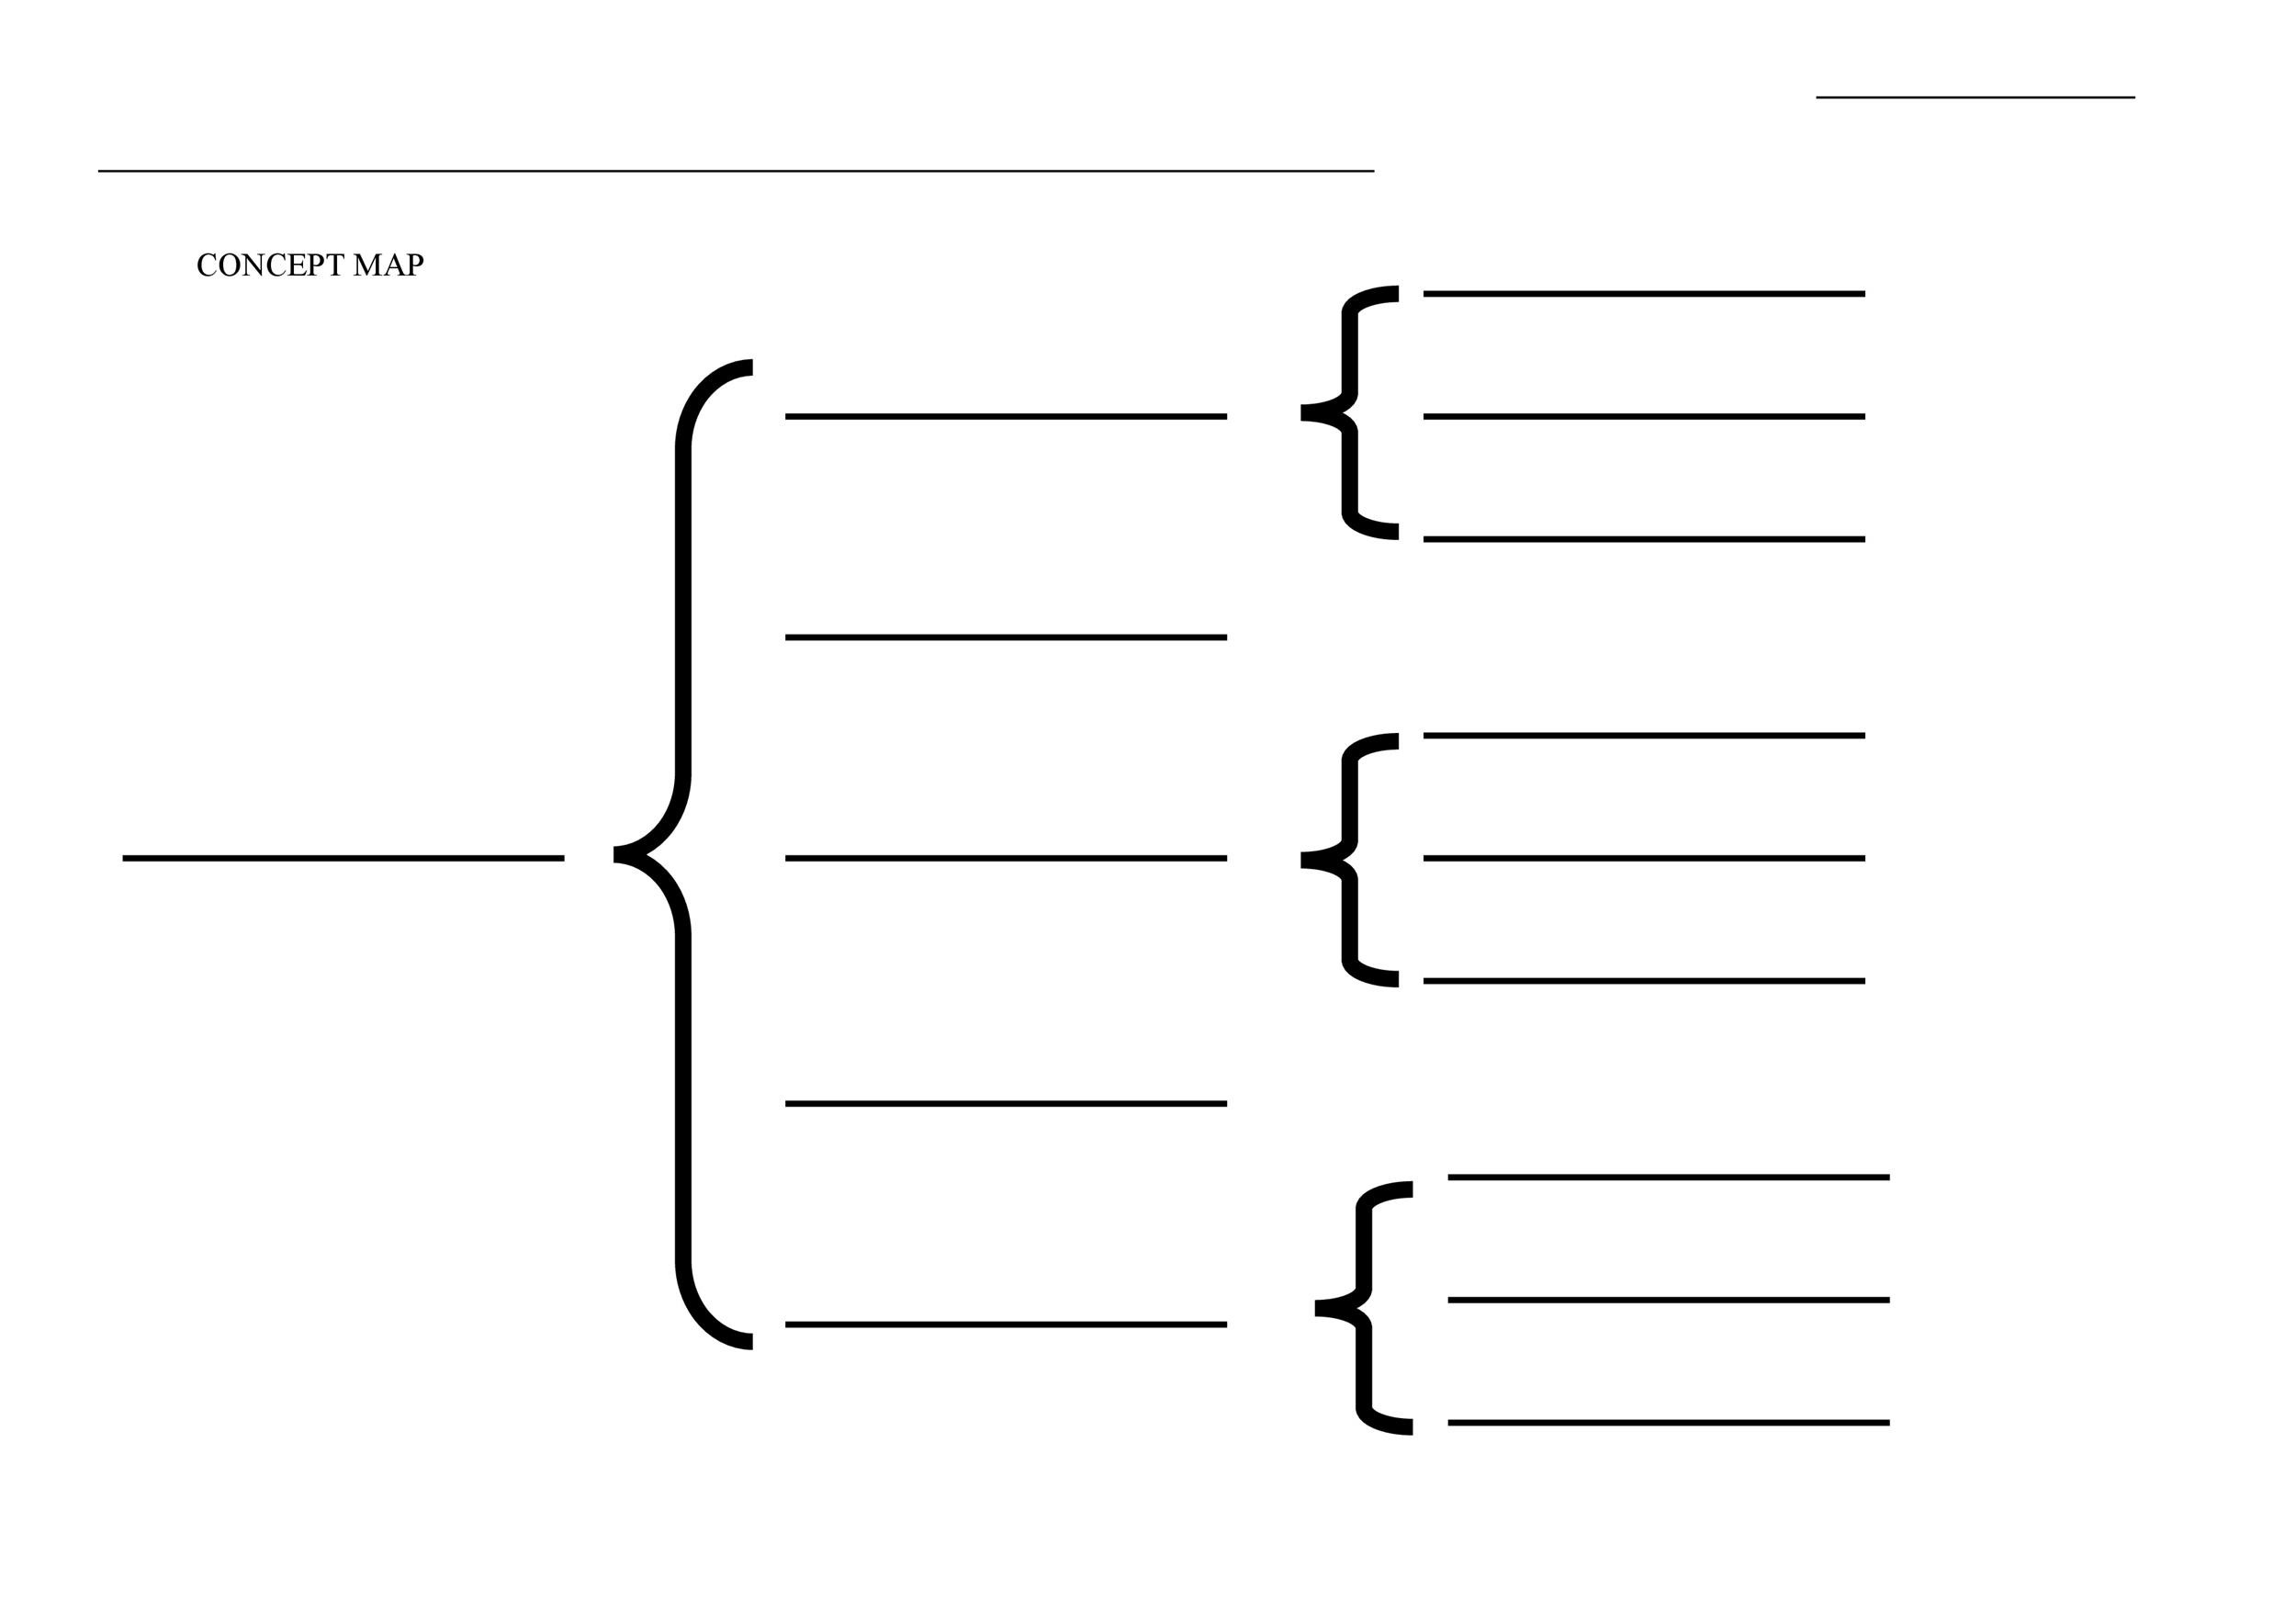 40 Concept Map Templates Hierarchical Spider Flowchart